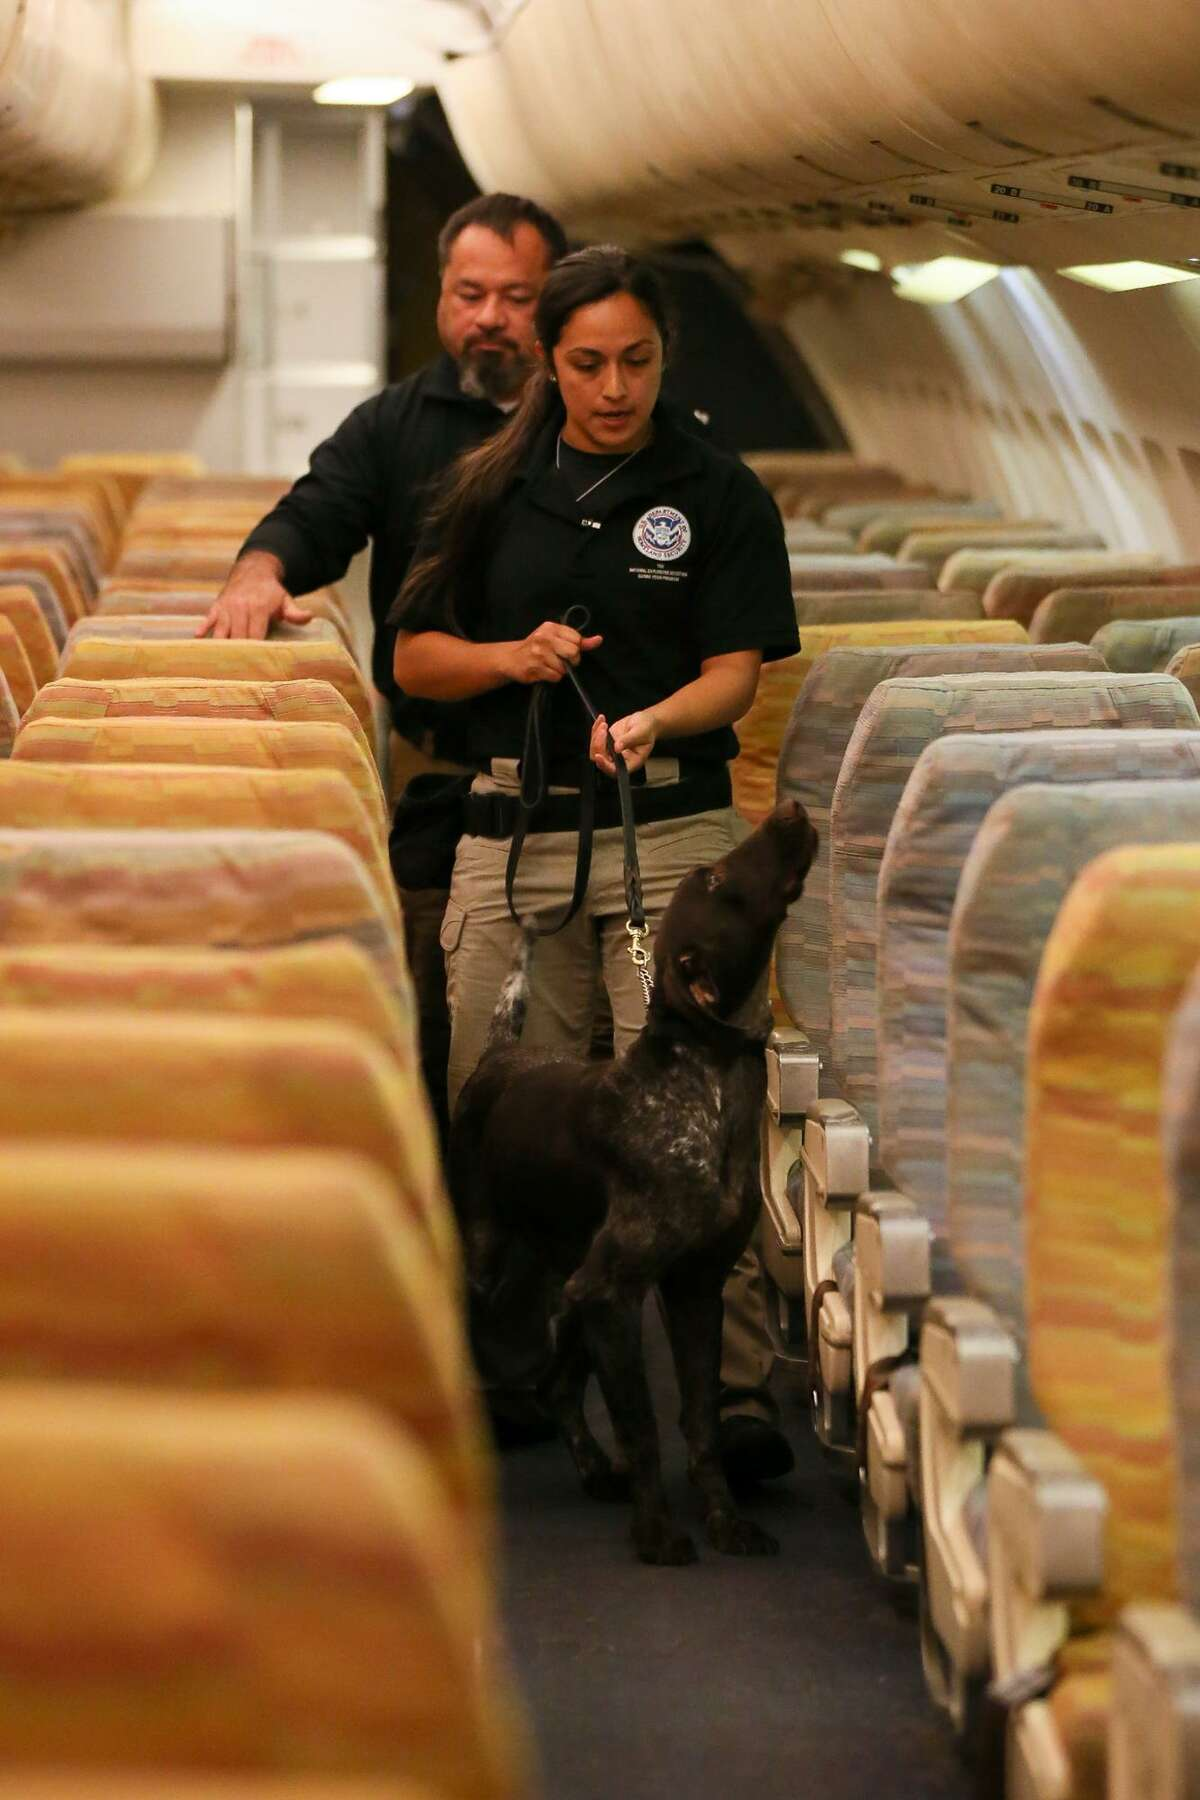 Raquel Granados from DFW searches for explosives with Szultan, a two-year-old German Shorthaired Pointer, in a wide aircraft exercise as the Transportation Security Administration gives a behind-the-scenes look at their explosive-detection K9 training center at Lackland Air Force Base on Wednesday, Oct. 17, 2018.